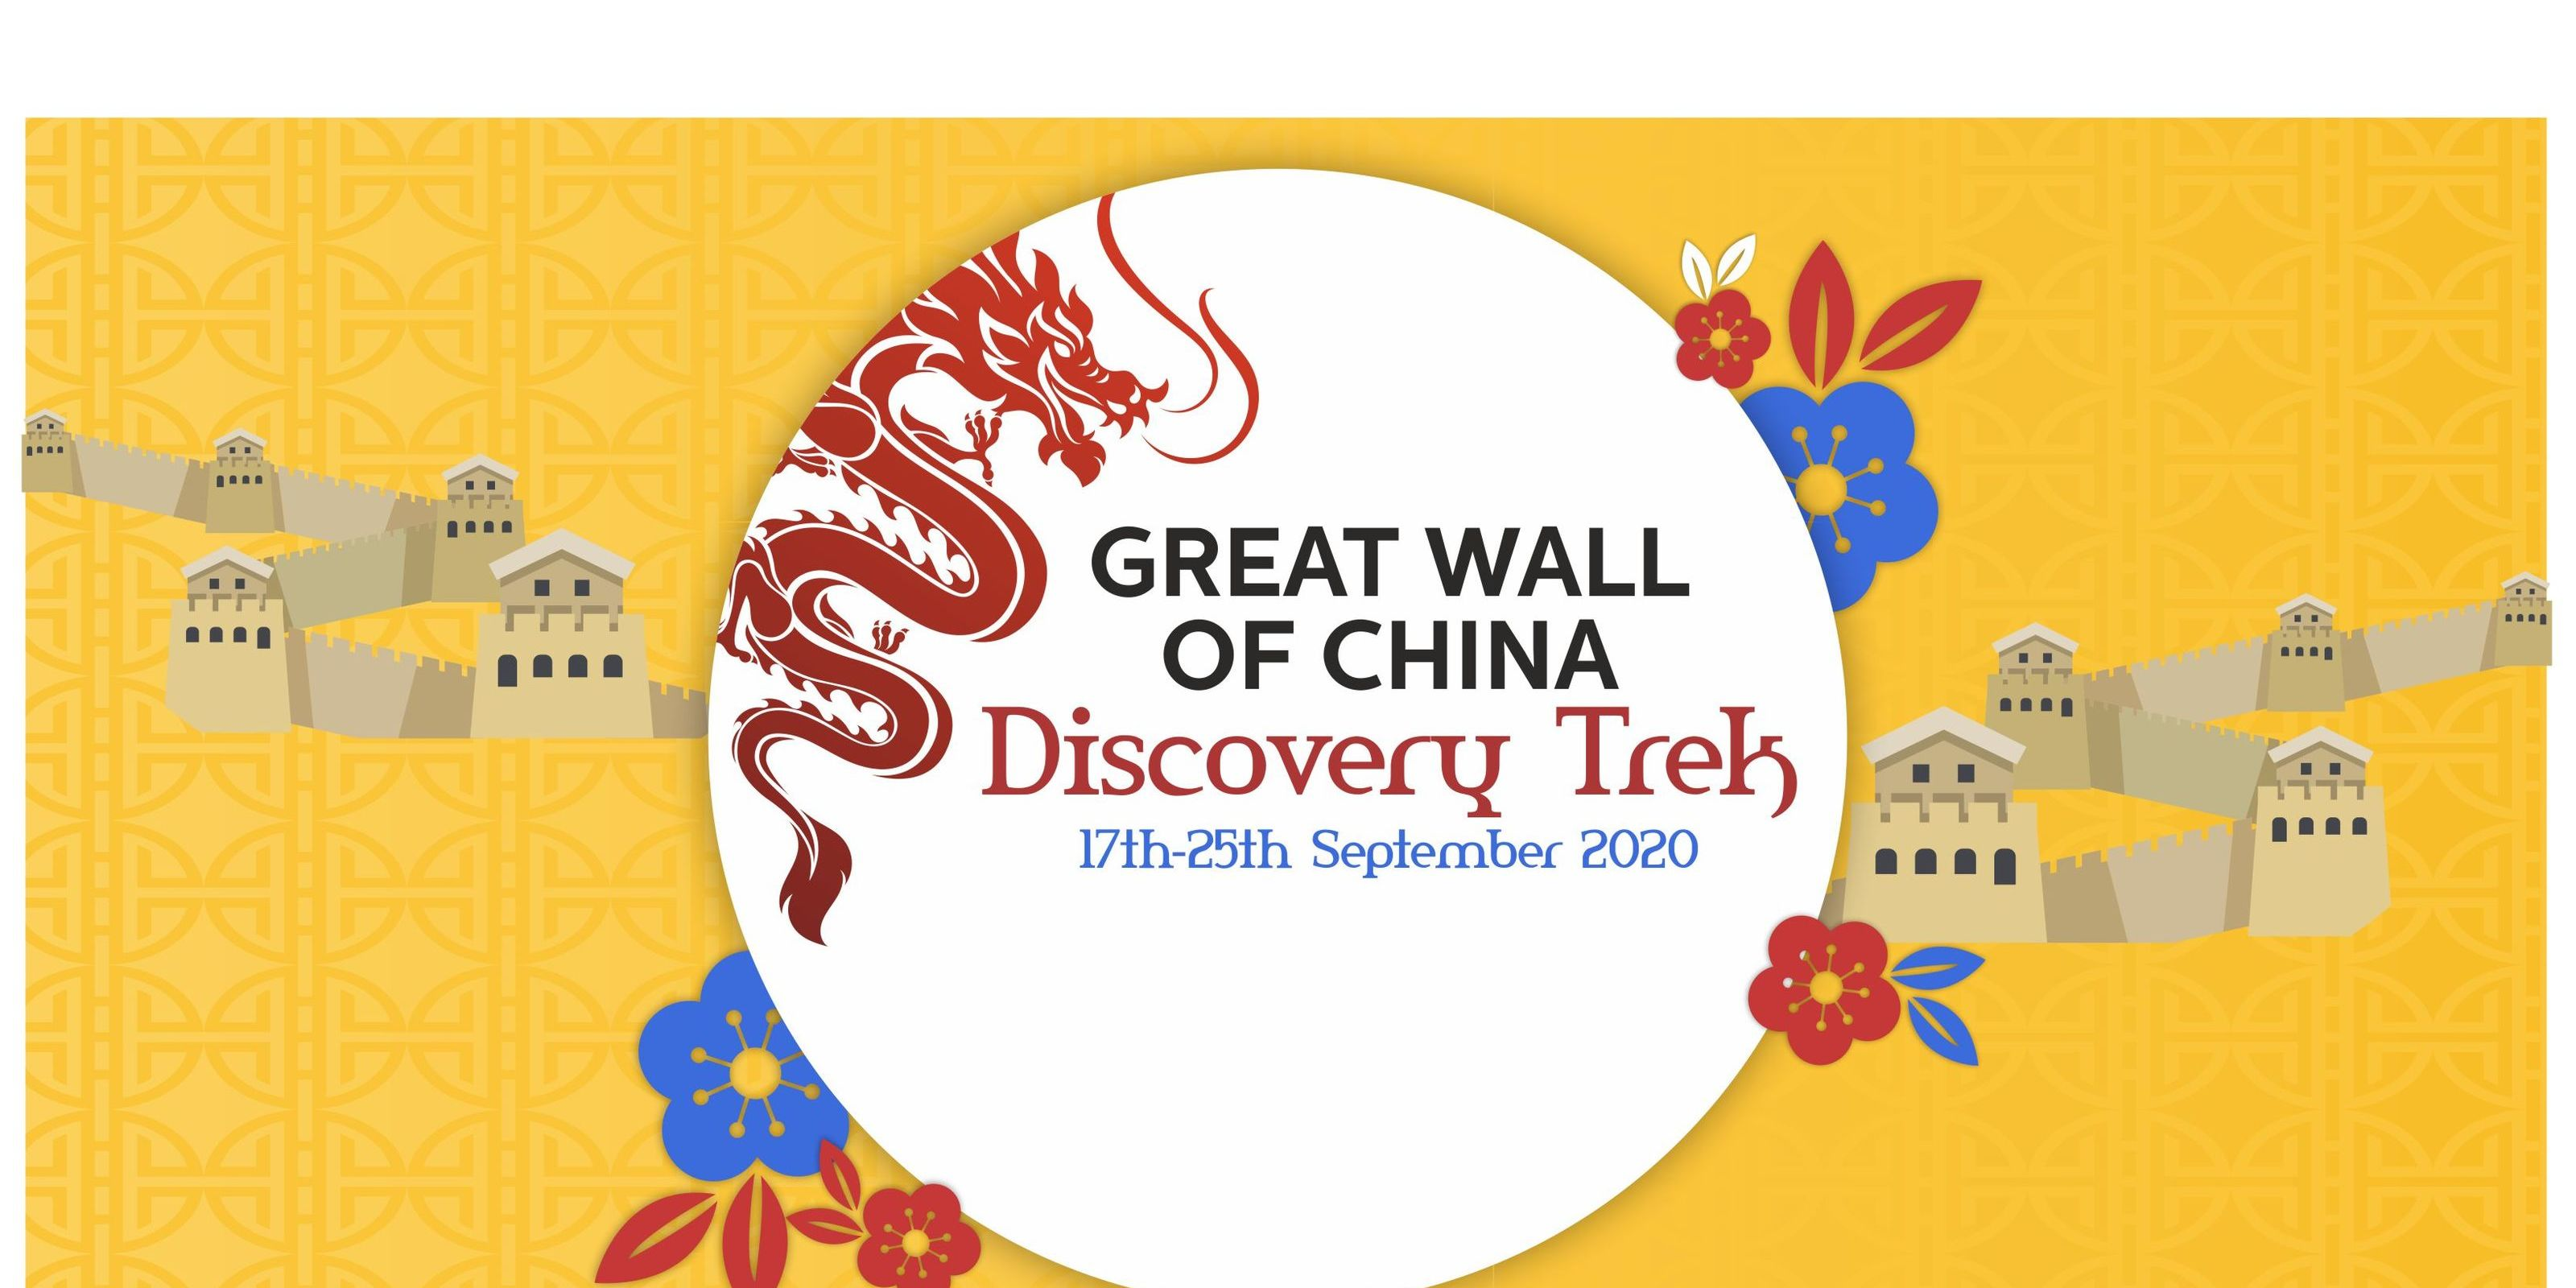 Great Wall Of China Discovery Trek 2020